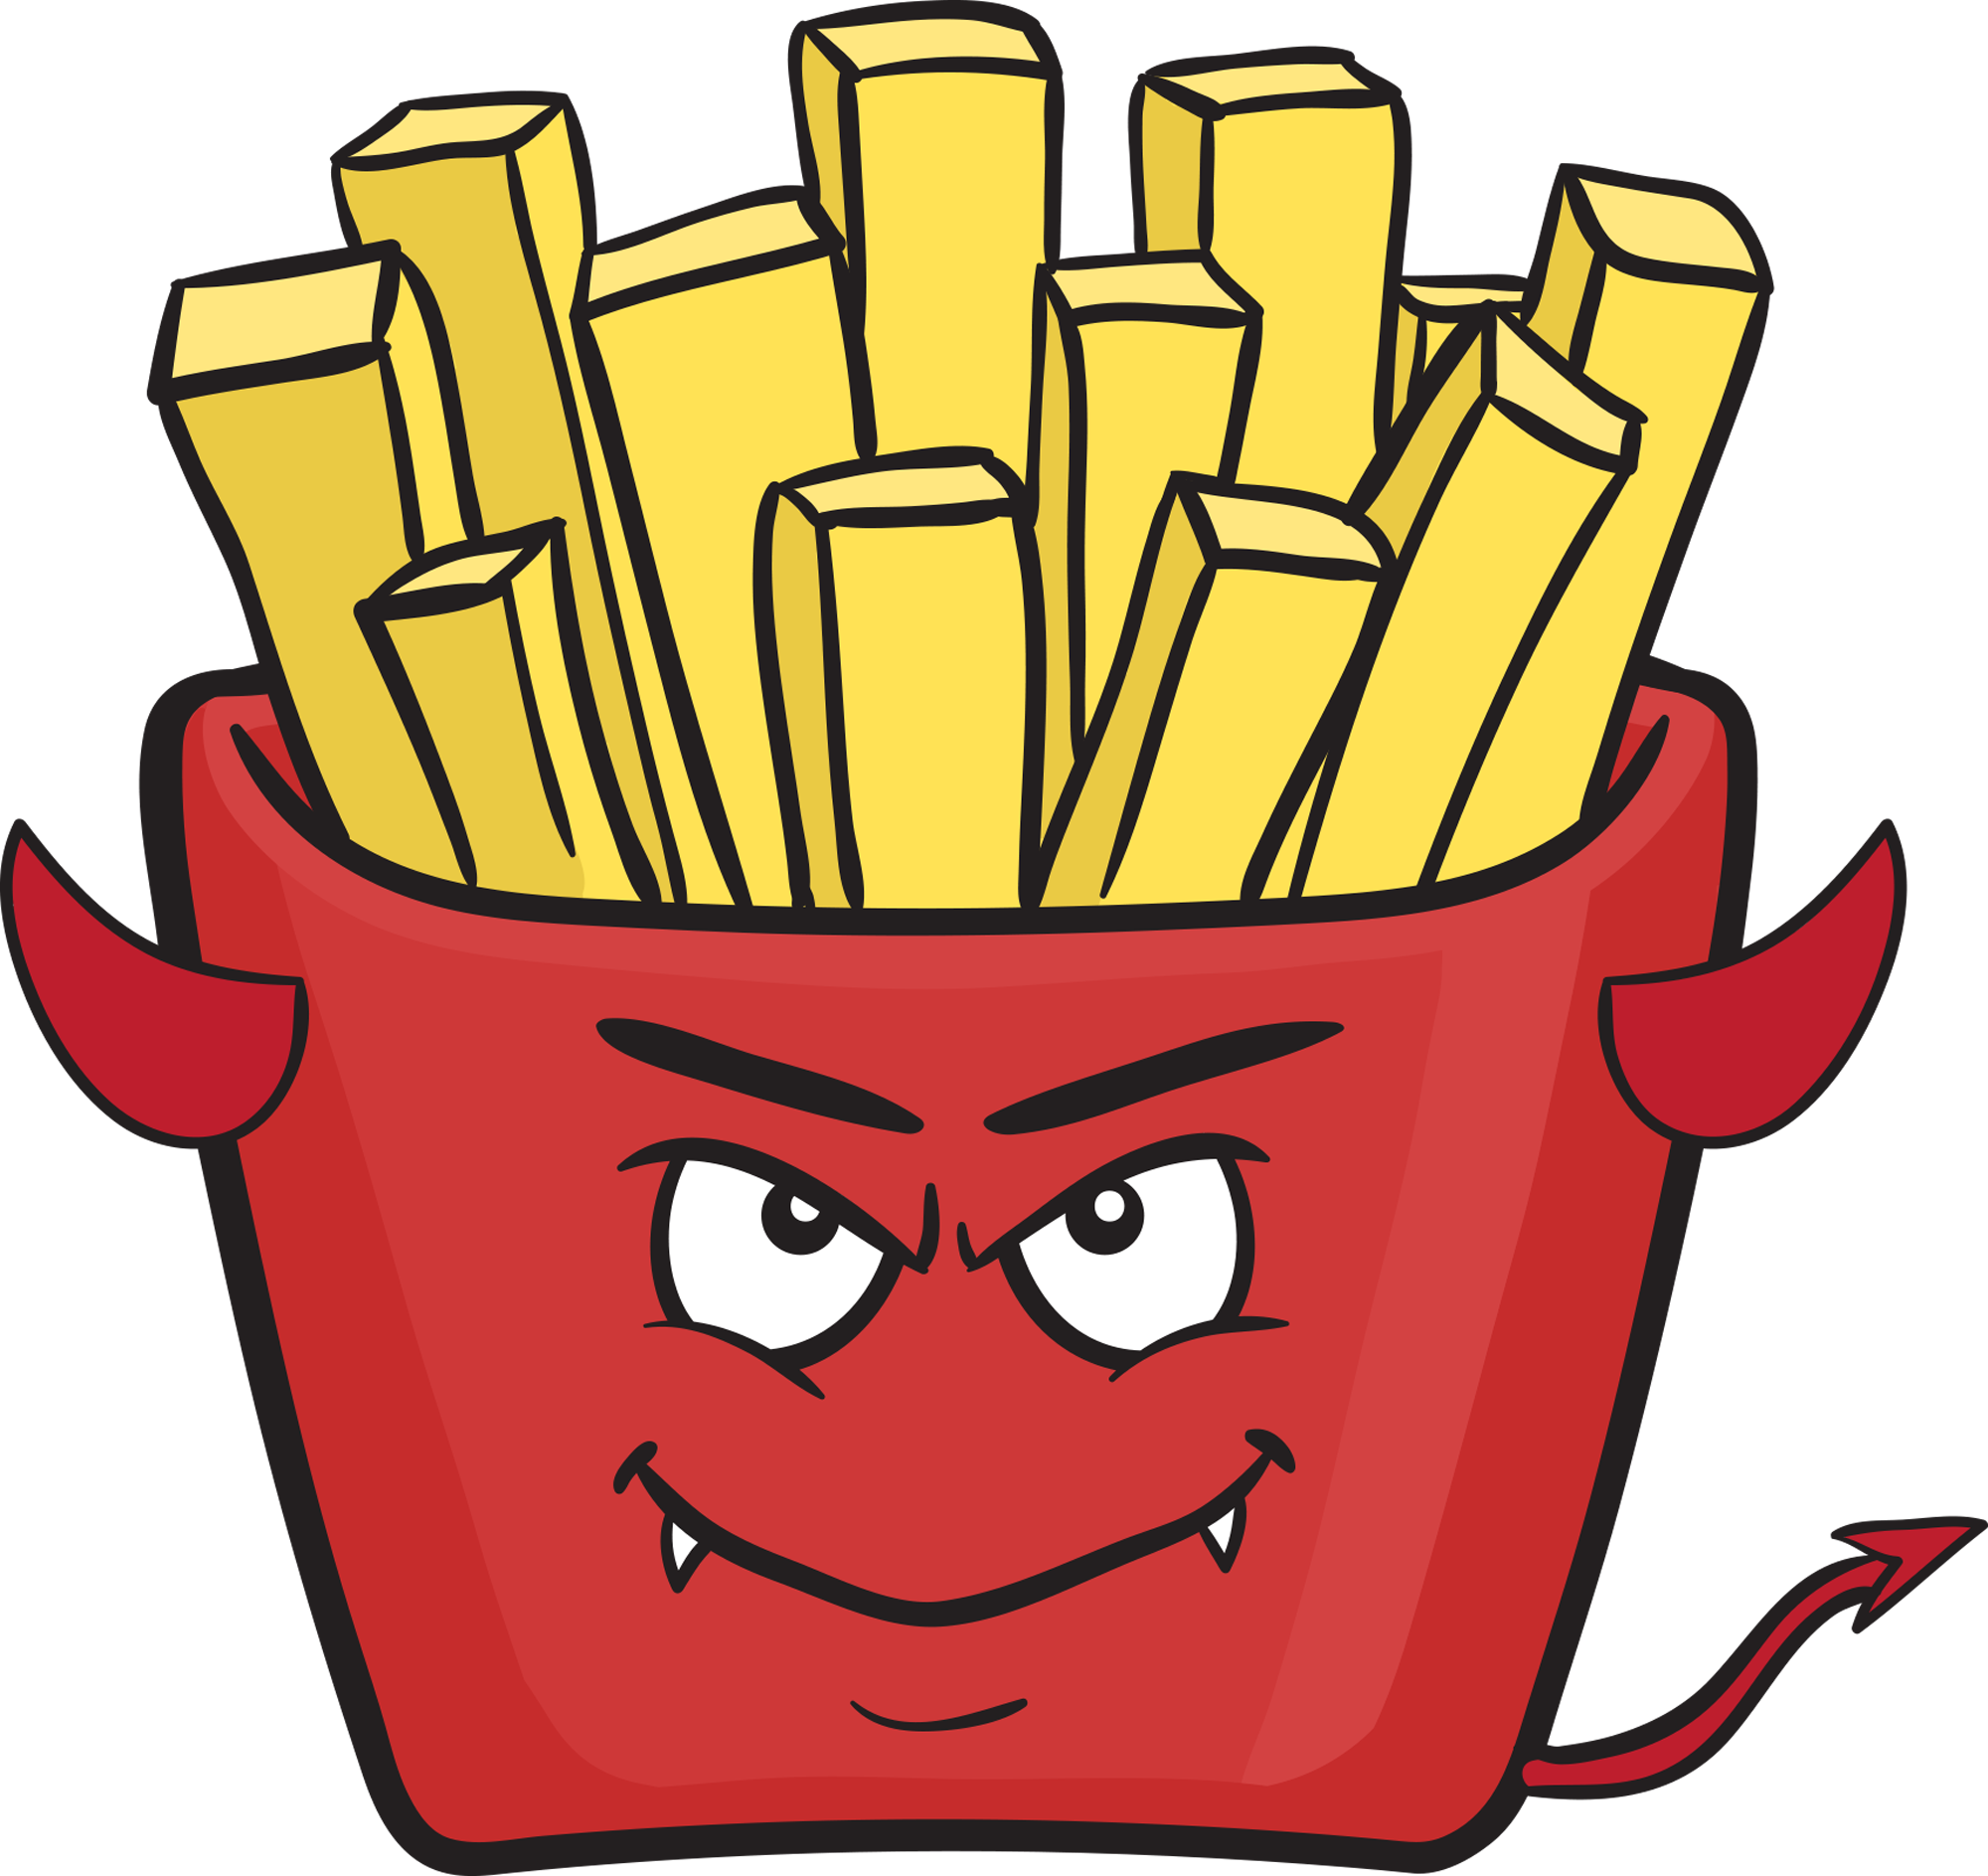 Emoji clipart fry. Satan lucifer and some